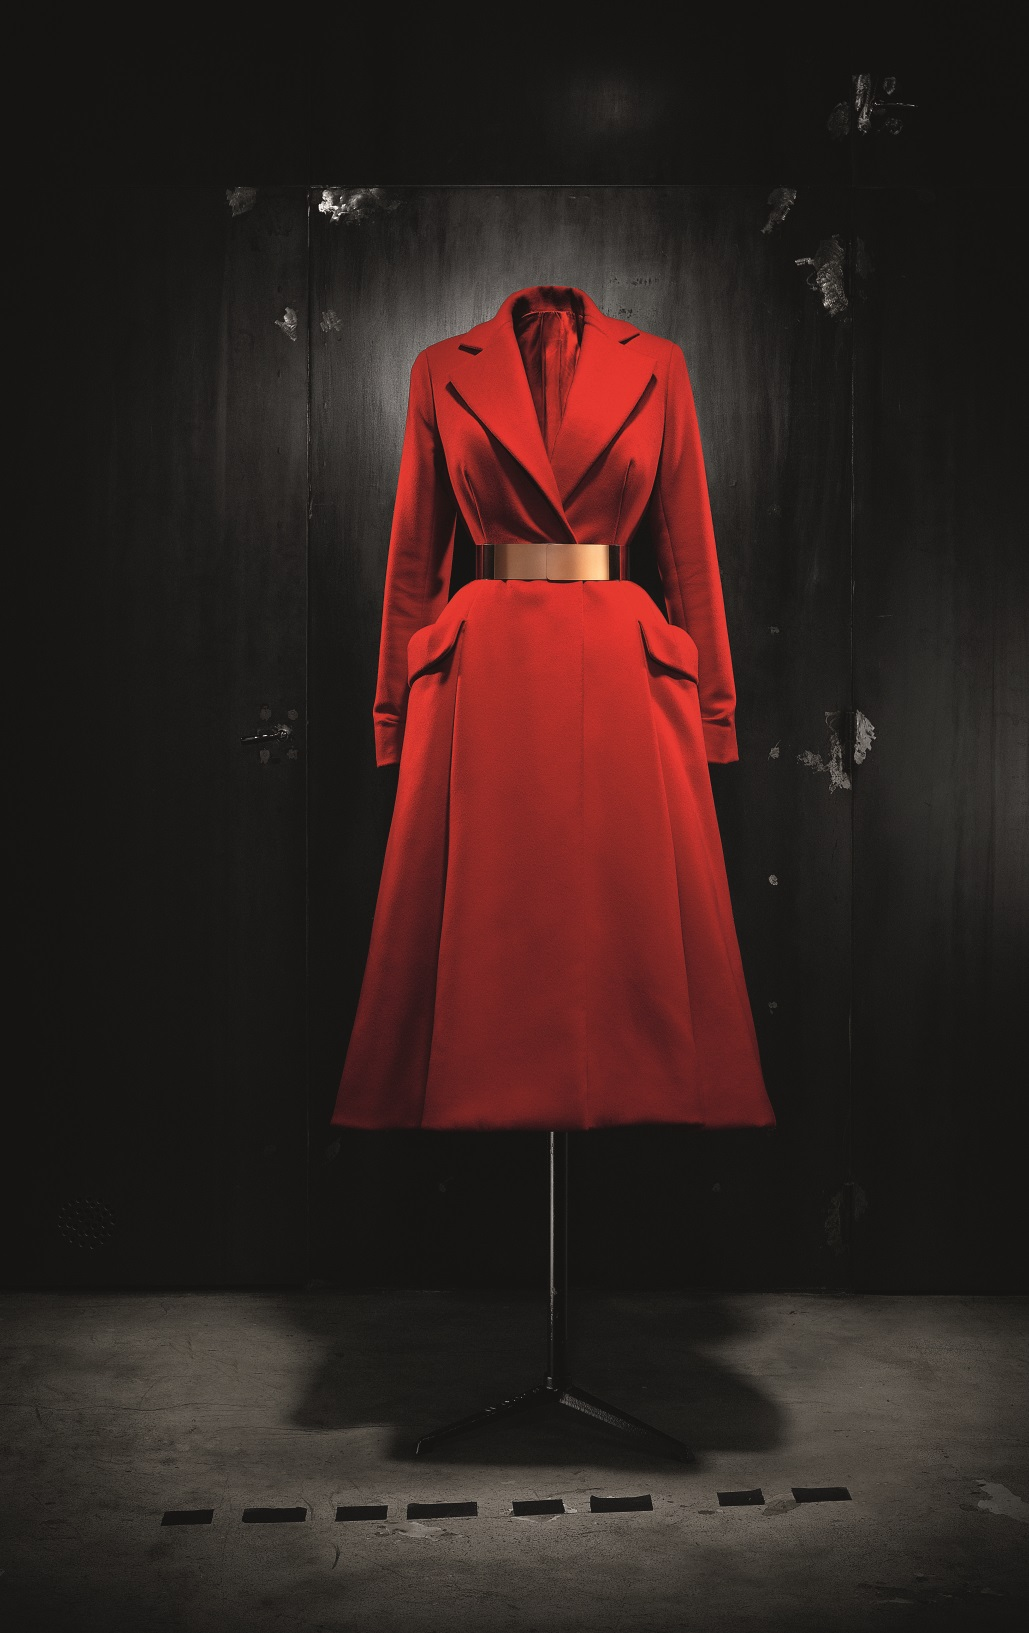 Christian Dior by Raf Simons (b.1968), Coat, Haute Couture, AutumnWinter 2012. Photo (c) Laziz Hamani. Dior Héritage collection, Paris.jpg